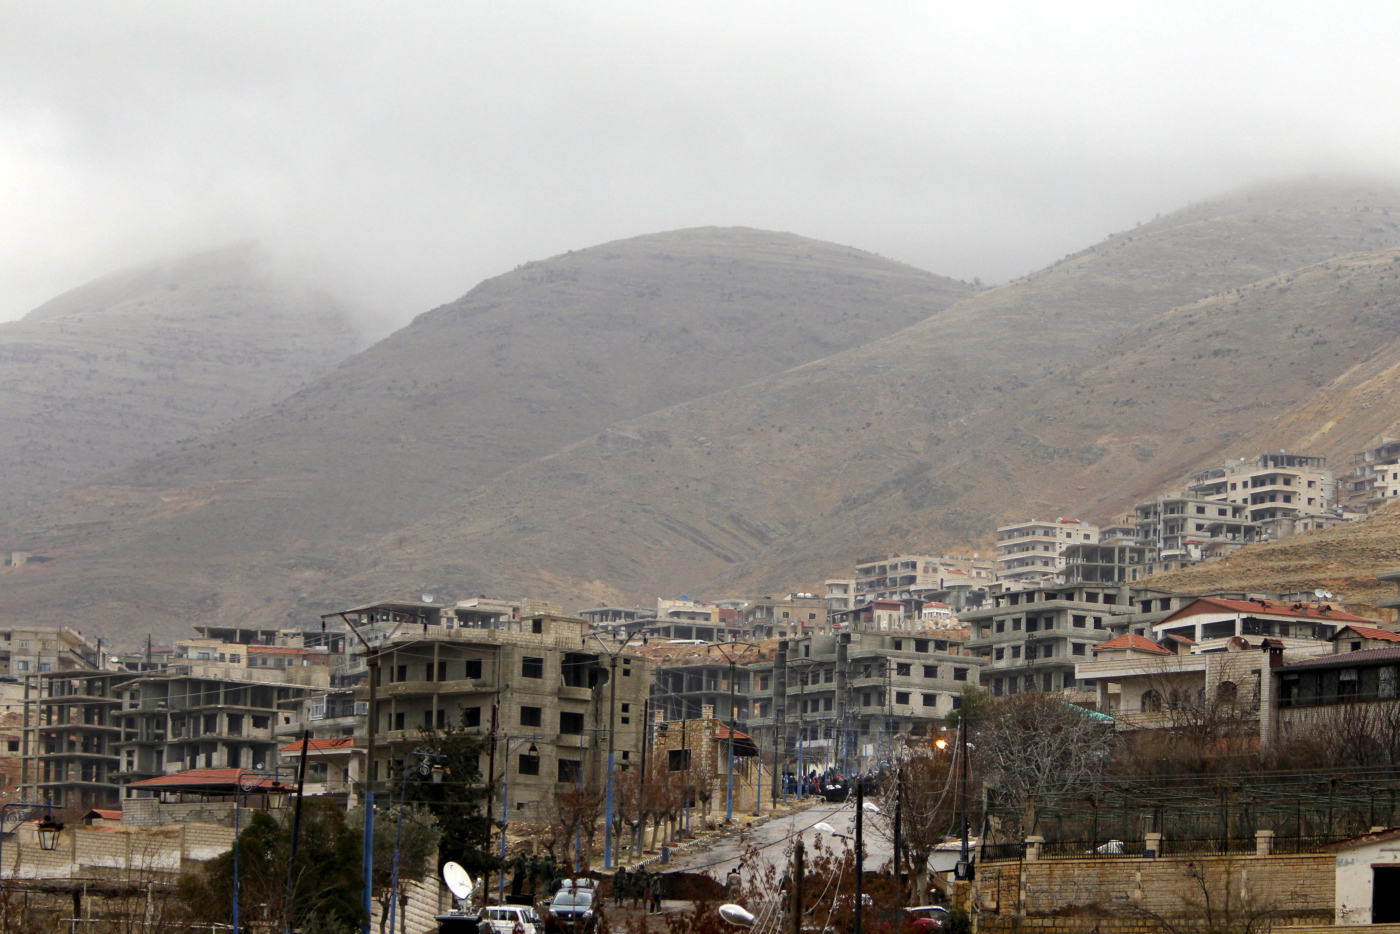 FILE PHOTO: A general view shows the town of Madaya, Syria, January 14, 2016. REUTERS/Omar Sanadiki/File Photo